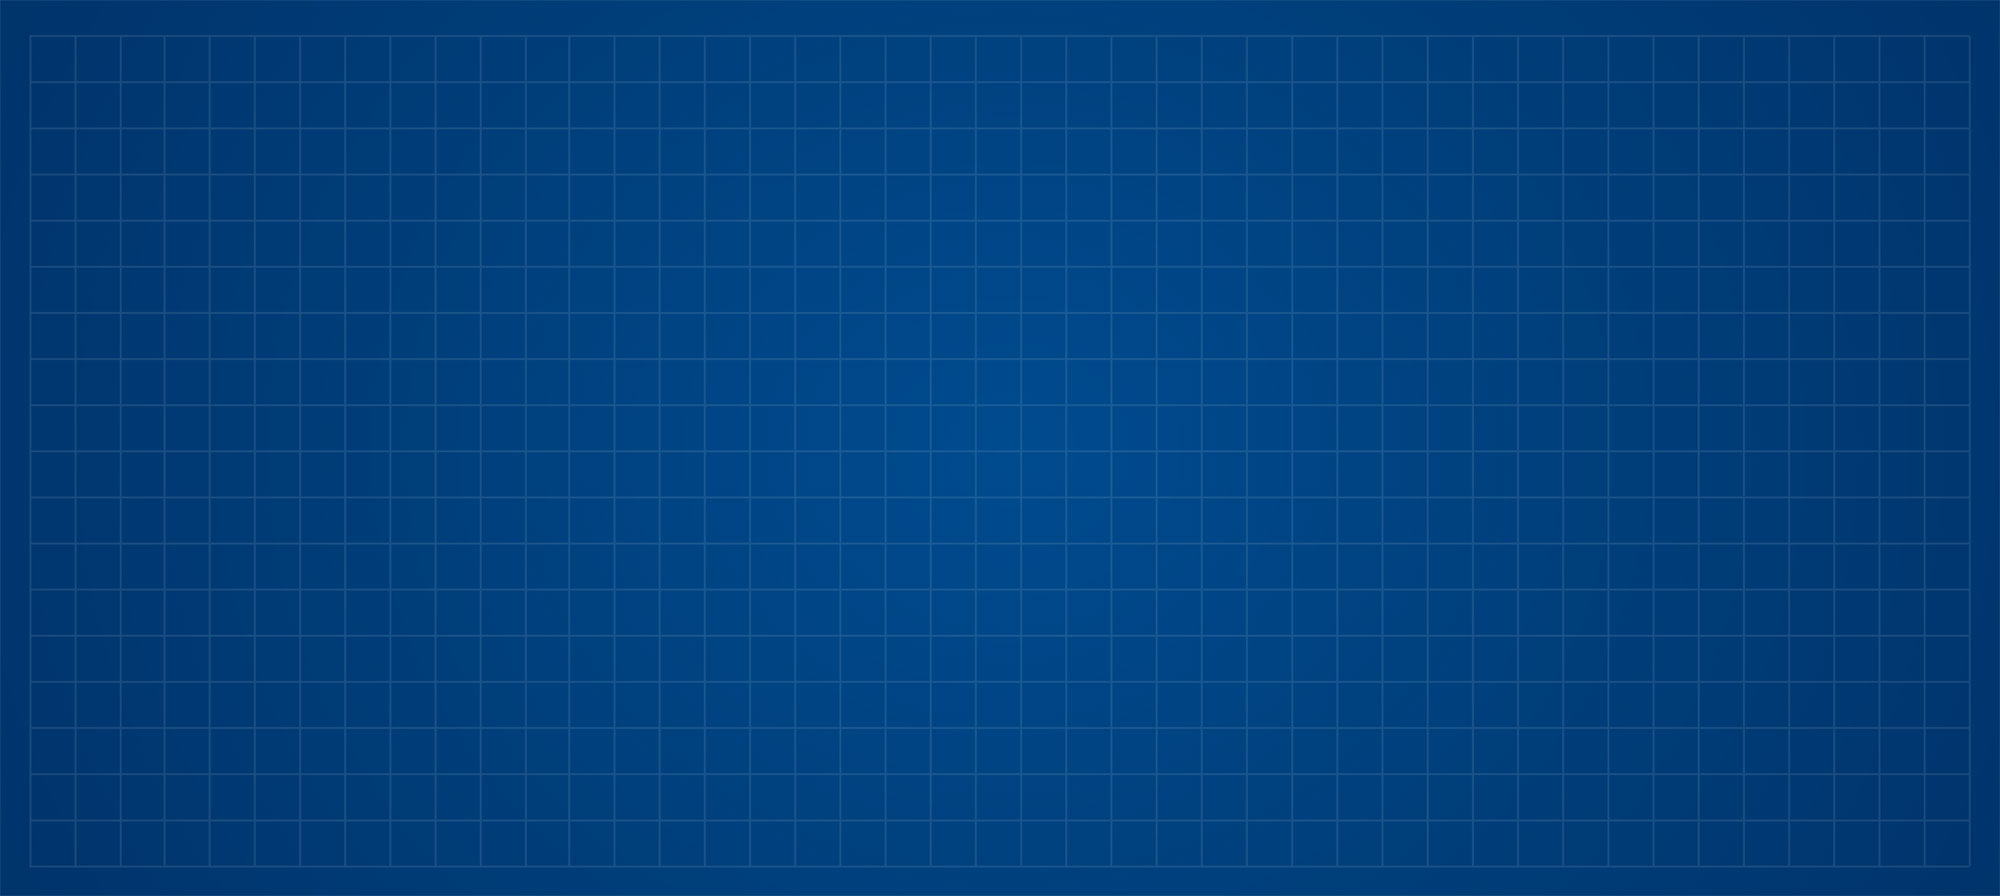 rectangle-blueprint-background